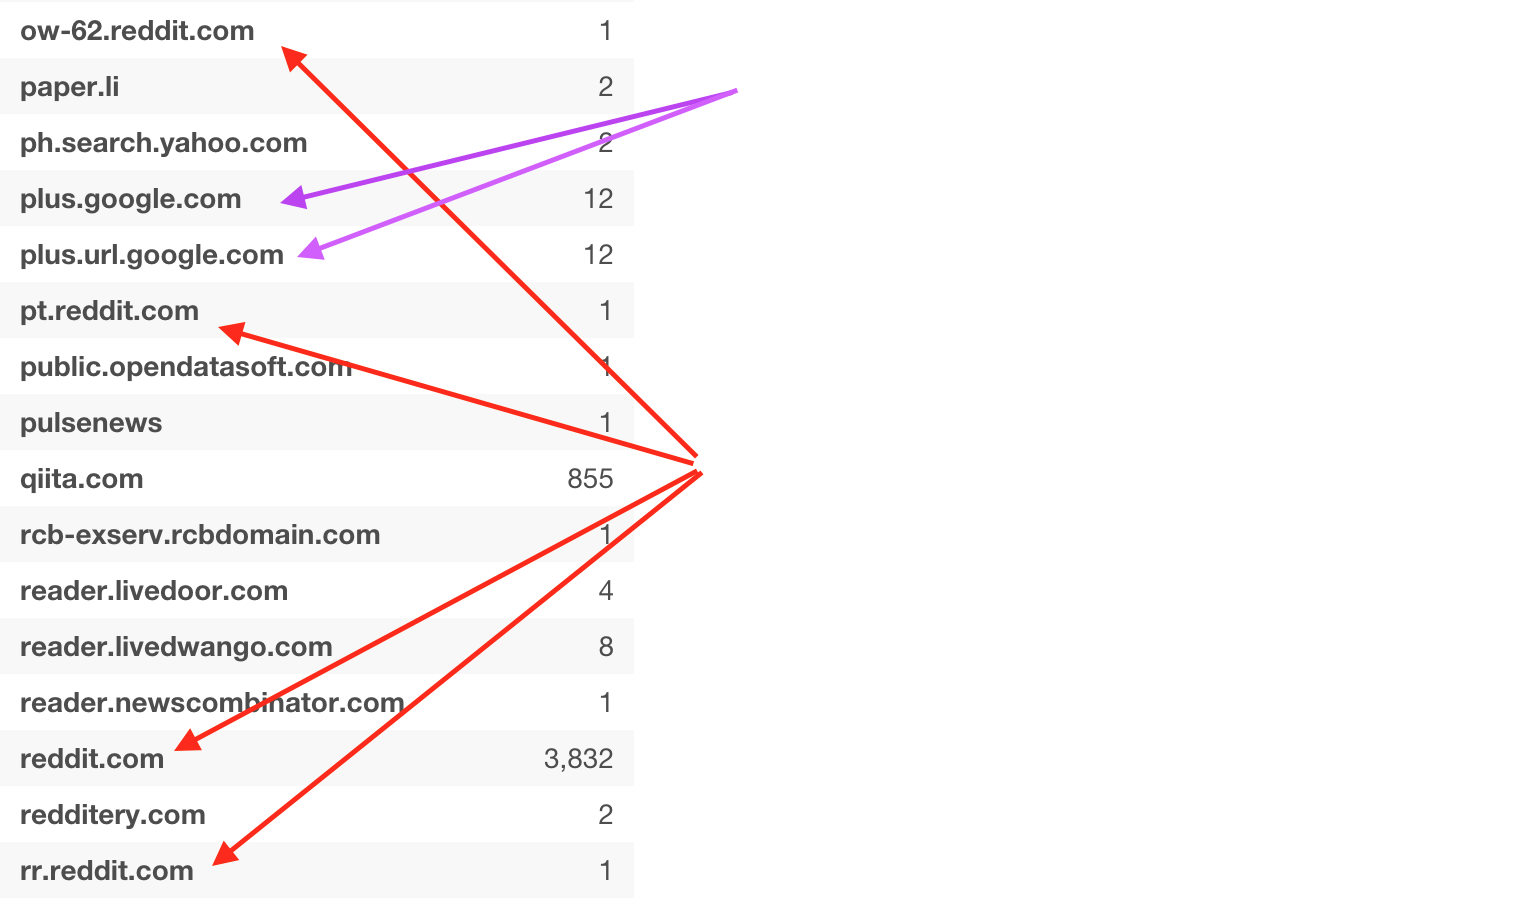 Cleaning up Source URL data from Google Analytics - learn data science